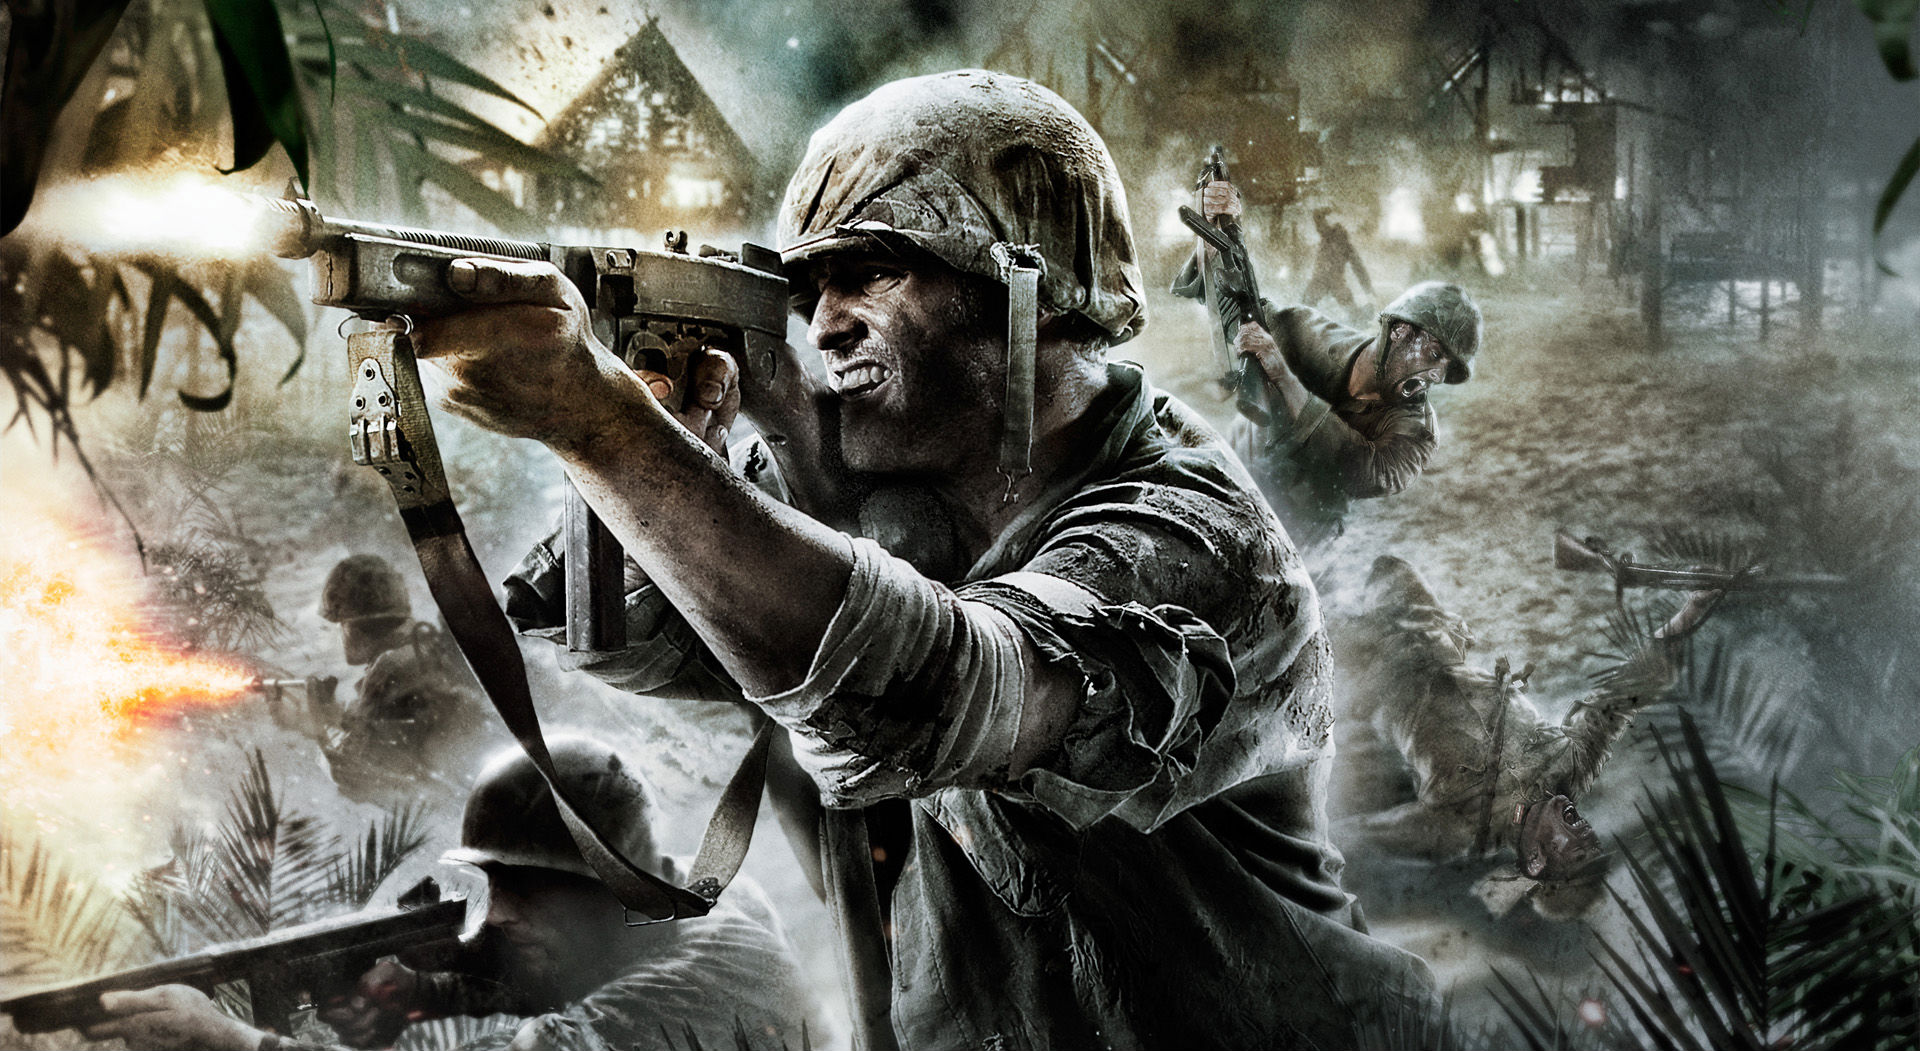 Call Of Duty Wwii Hd Wallpapers Call Of Duty Ww2 Wallpapers HD Wallpapers Download Free Images Wallpaper [1000image.com]